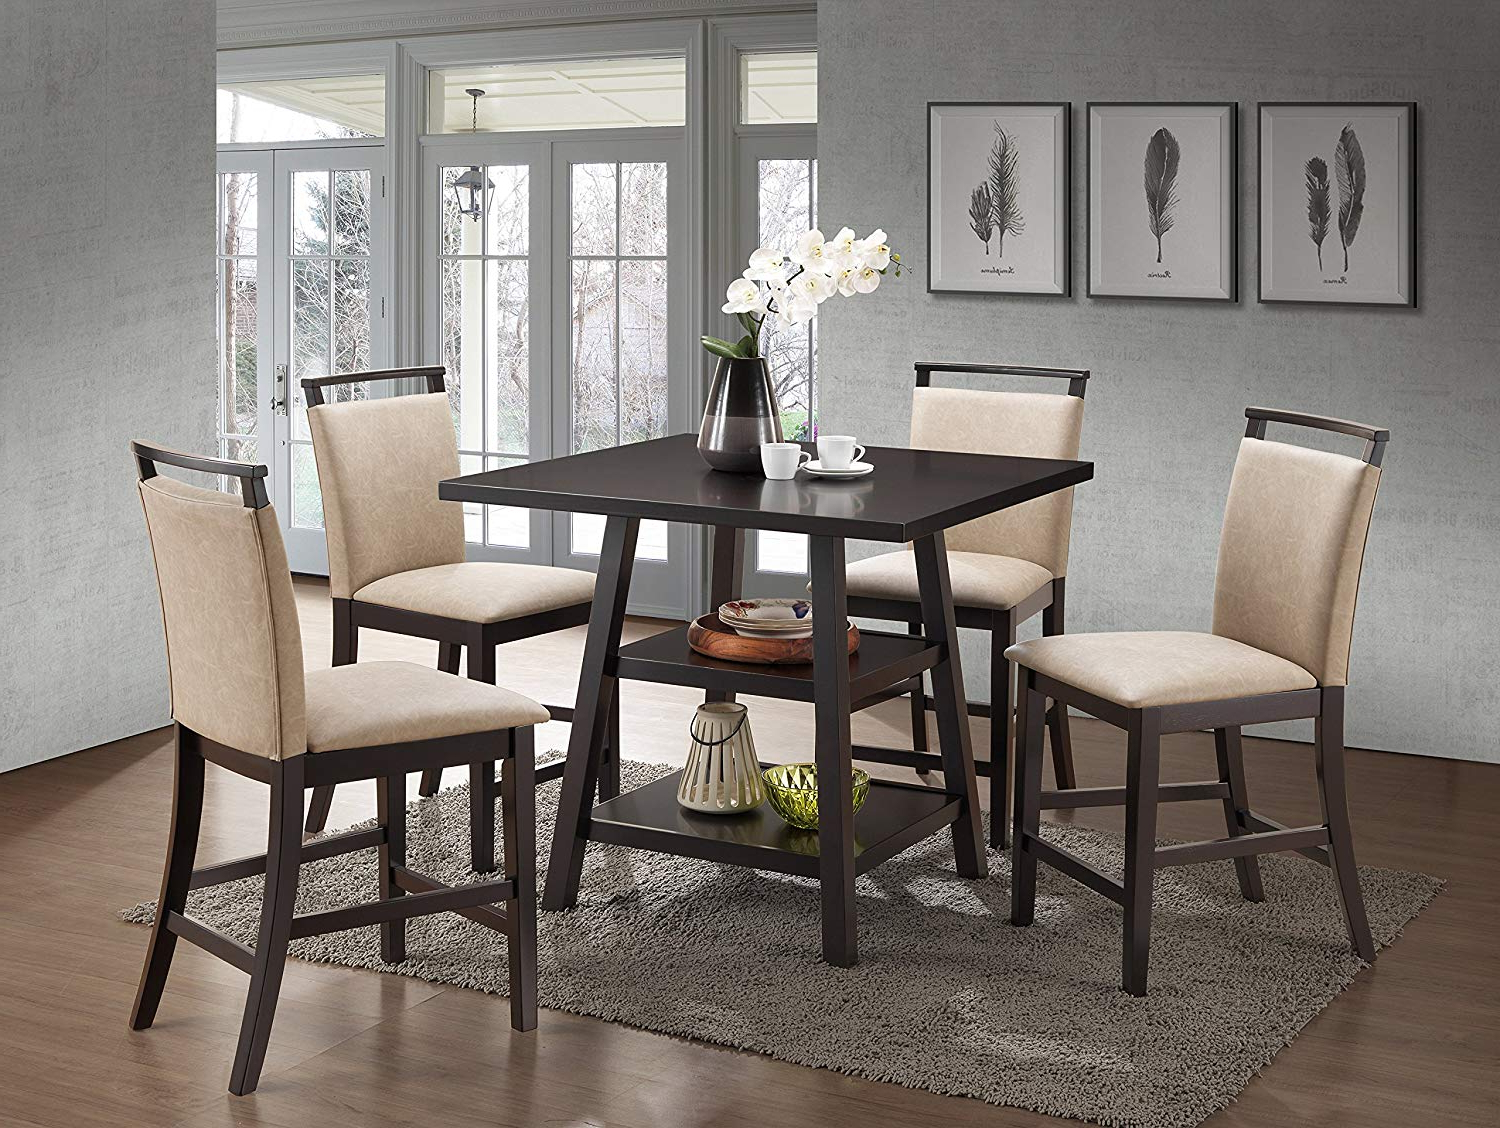 Kings Brand Aloe 5 Piece Cappuccino Wood Counter Height Dining Set, Table With 4 Clay Upholstered Chairs Regarding Favorite Cappuccino Finish Wood Classic Casual Dining Tables (View 2 of 25)